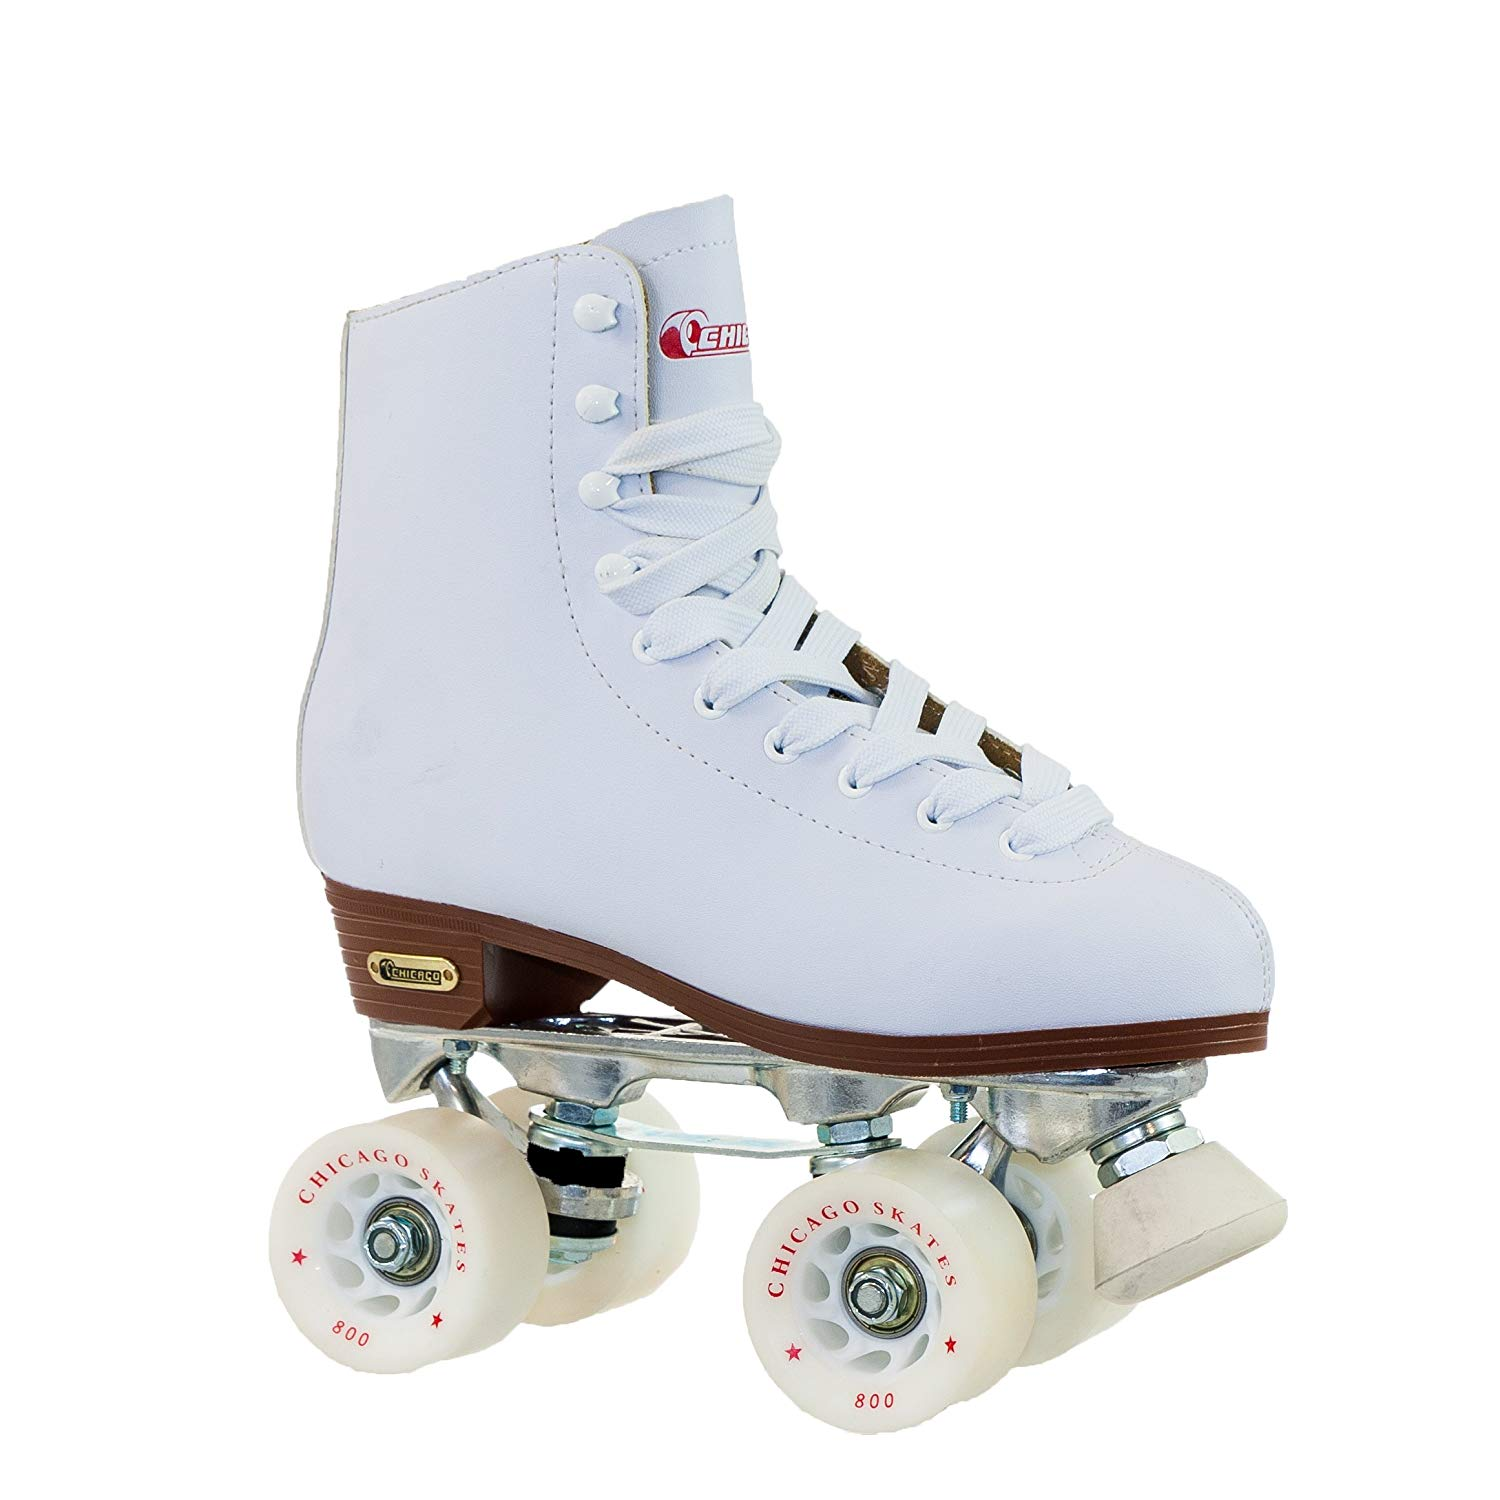 Women's Leather Lined Rink Roller Skate | Adjustable Roller Skate Shoes for kids